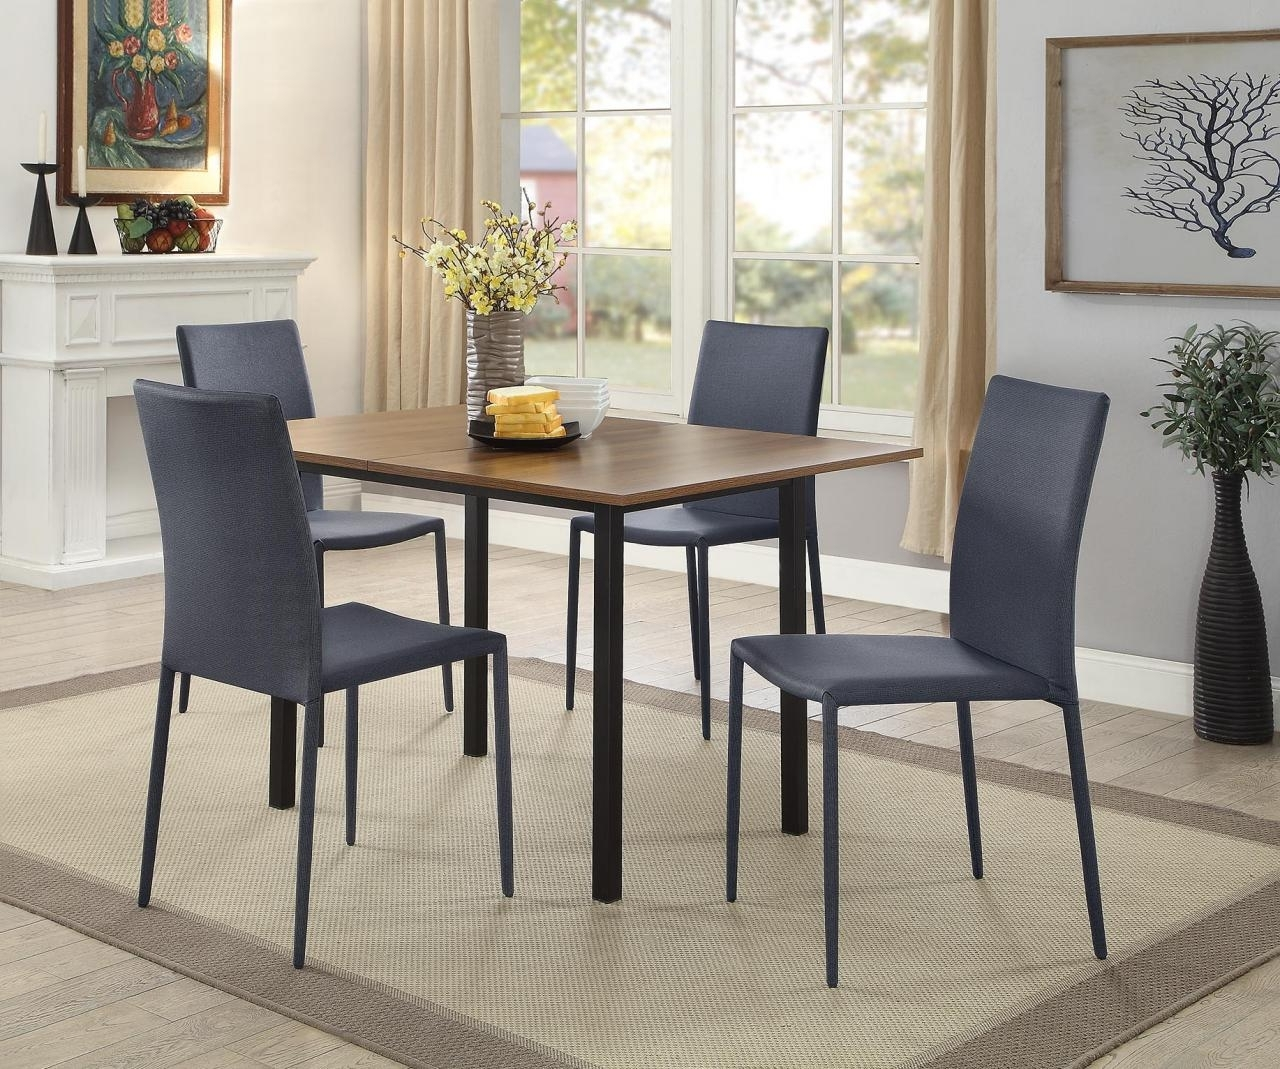 Market 7 Piece Dining Sets With Side Chairs Throughout Favorite Table And Chair Sets Kitchen Appliances, Furniture, And Mattress In (View 22 of 25)